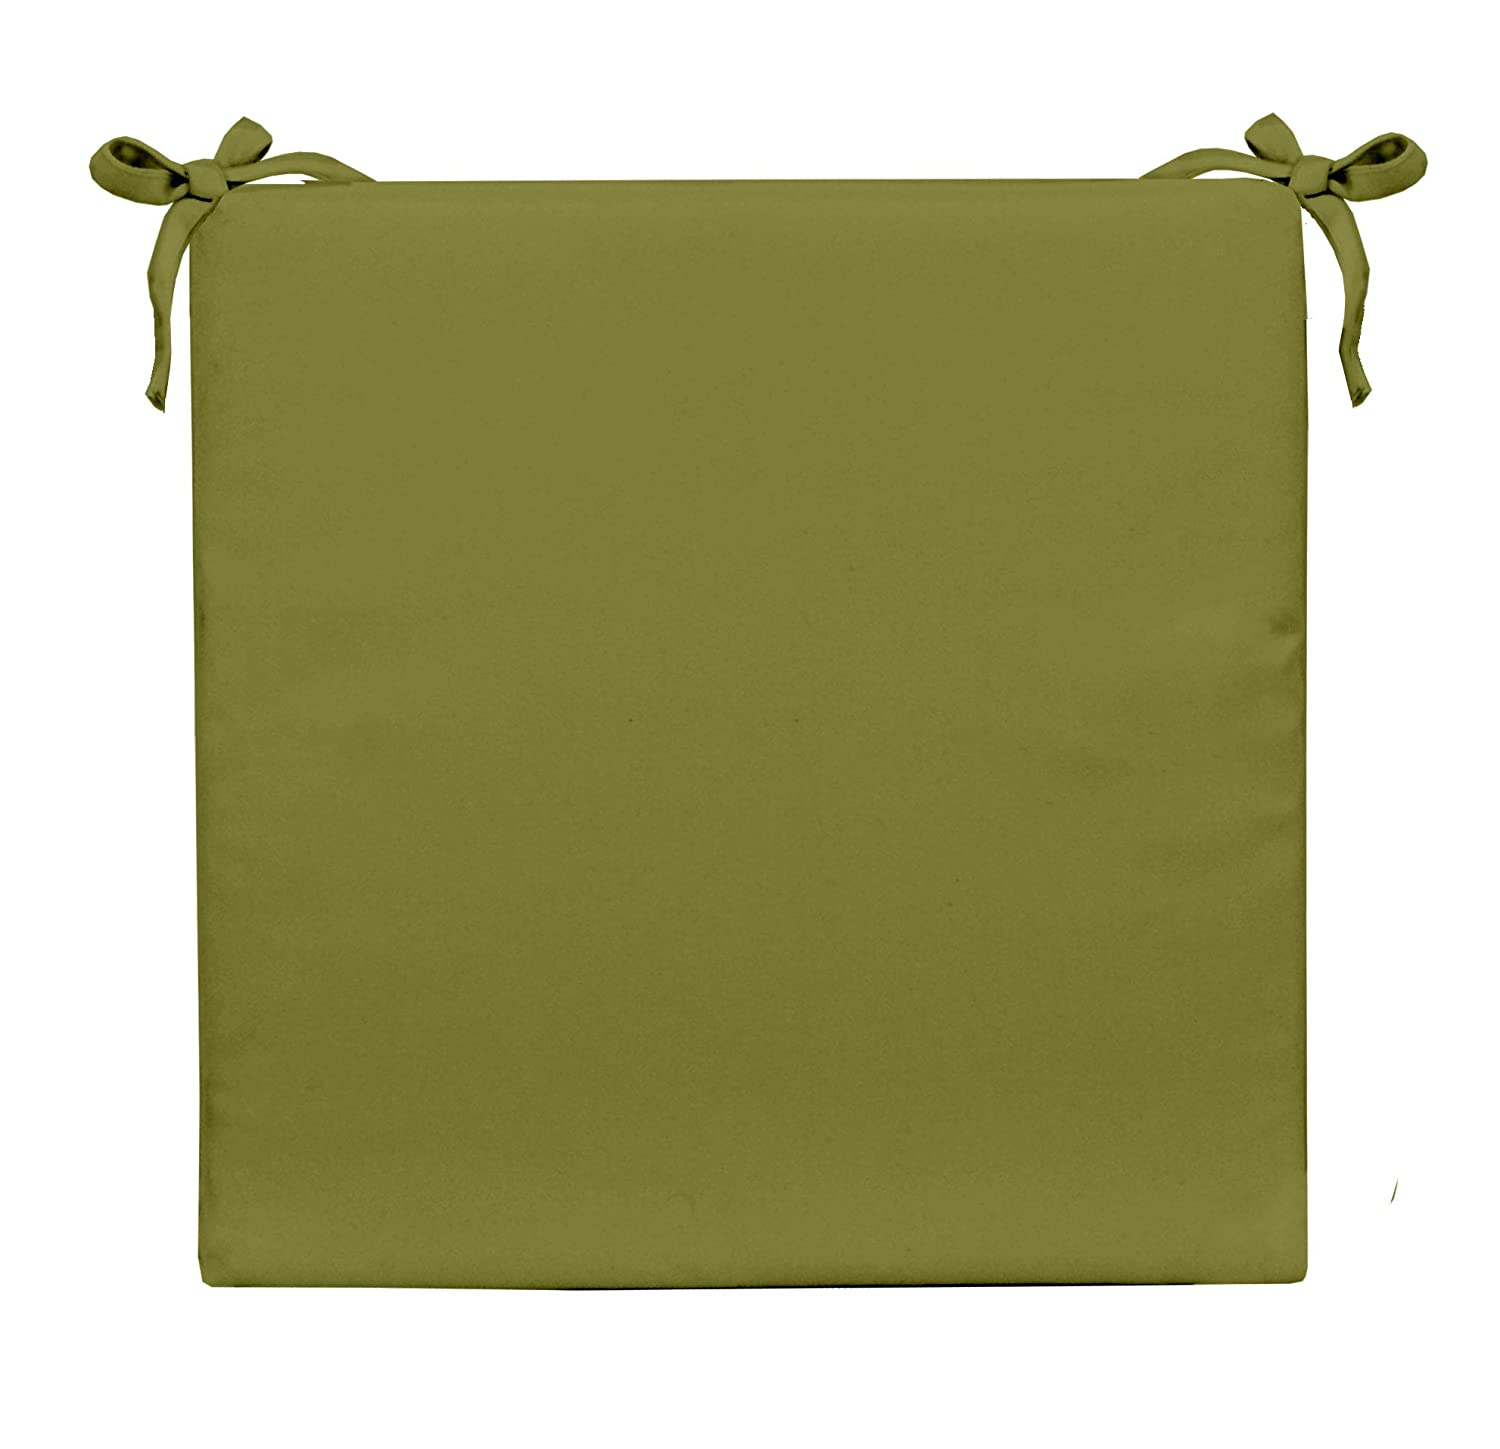 Resort Spa Home Decor Solid Kiwi Green Universal 3 Thick Foam Seat Chair Cushion w Ties – Indoor Outdoor – Choose Size